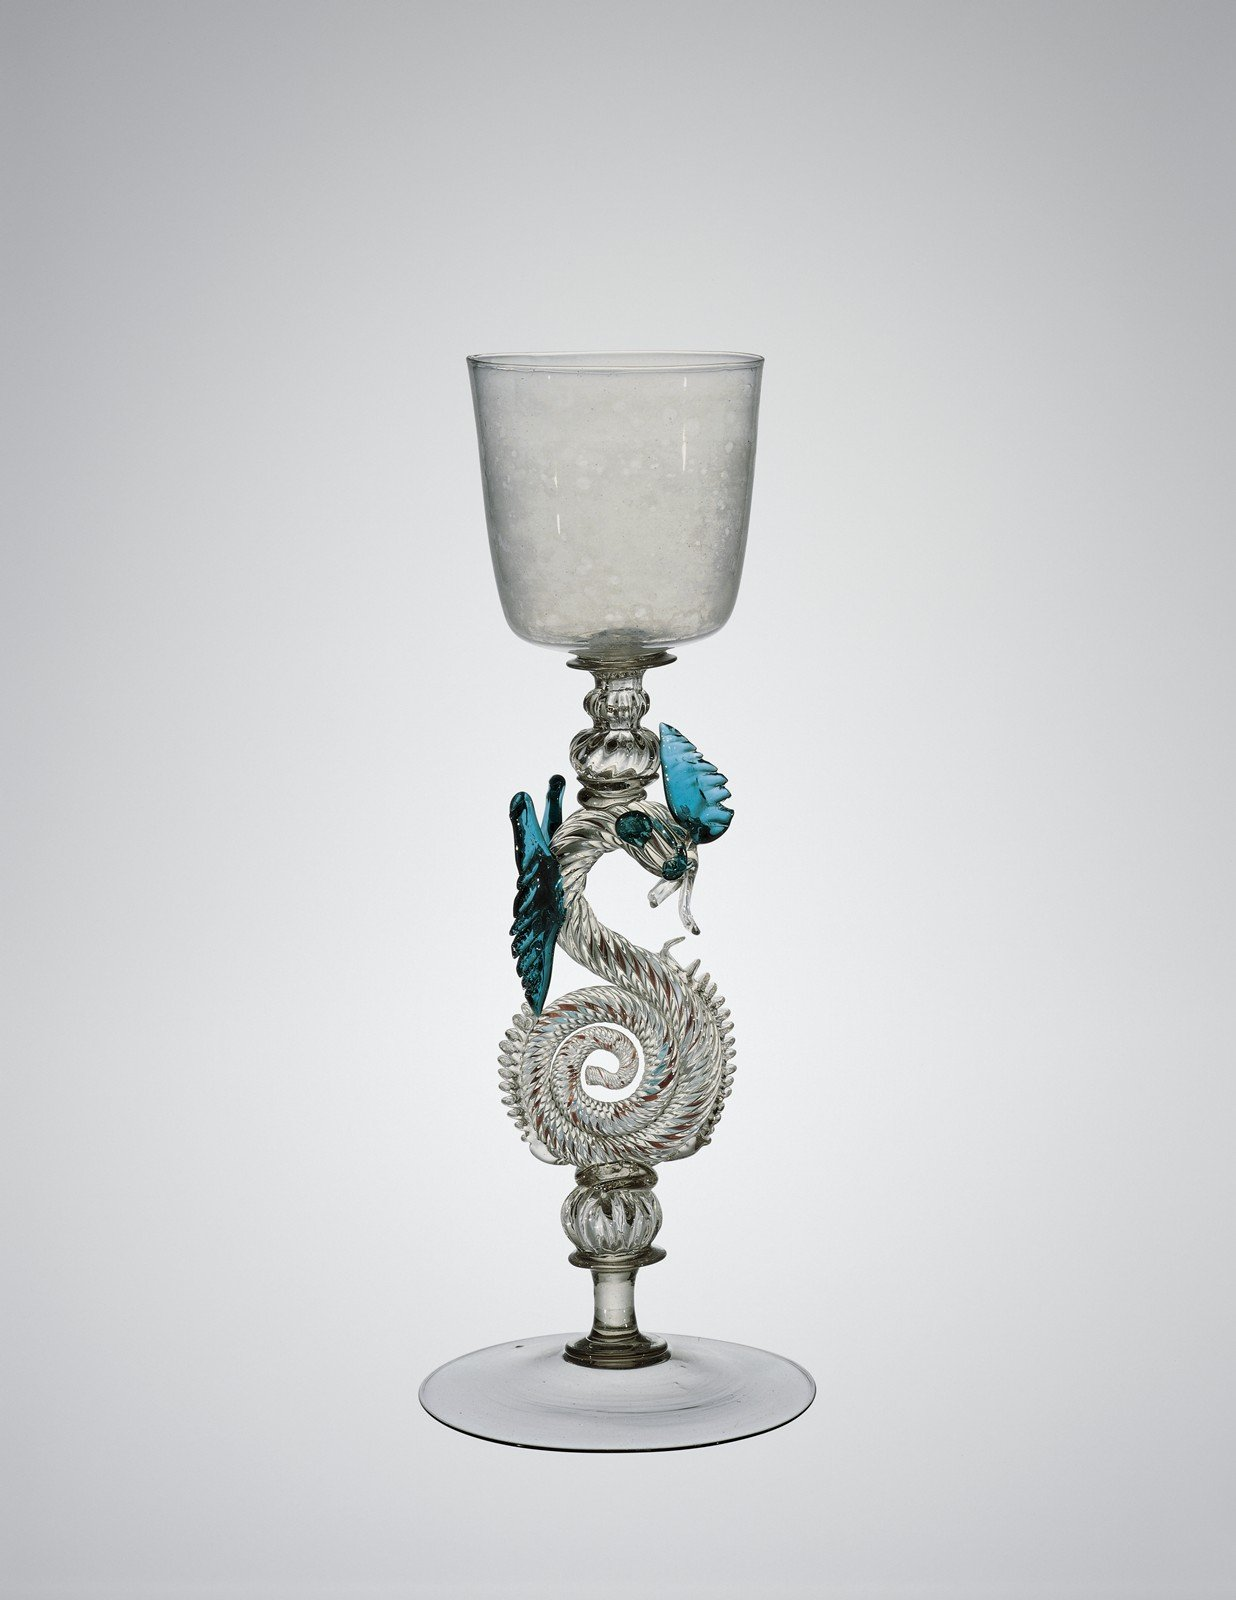 Goblet Style Wine Glasses Collection Search Corning Museum Of Glass